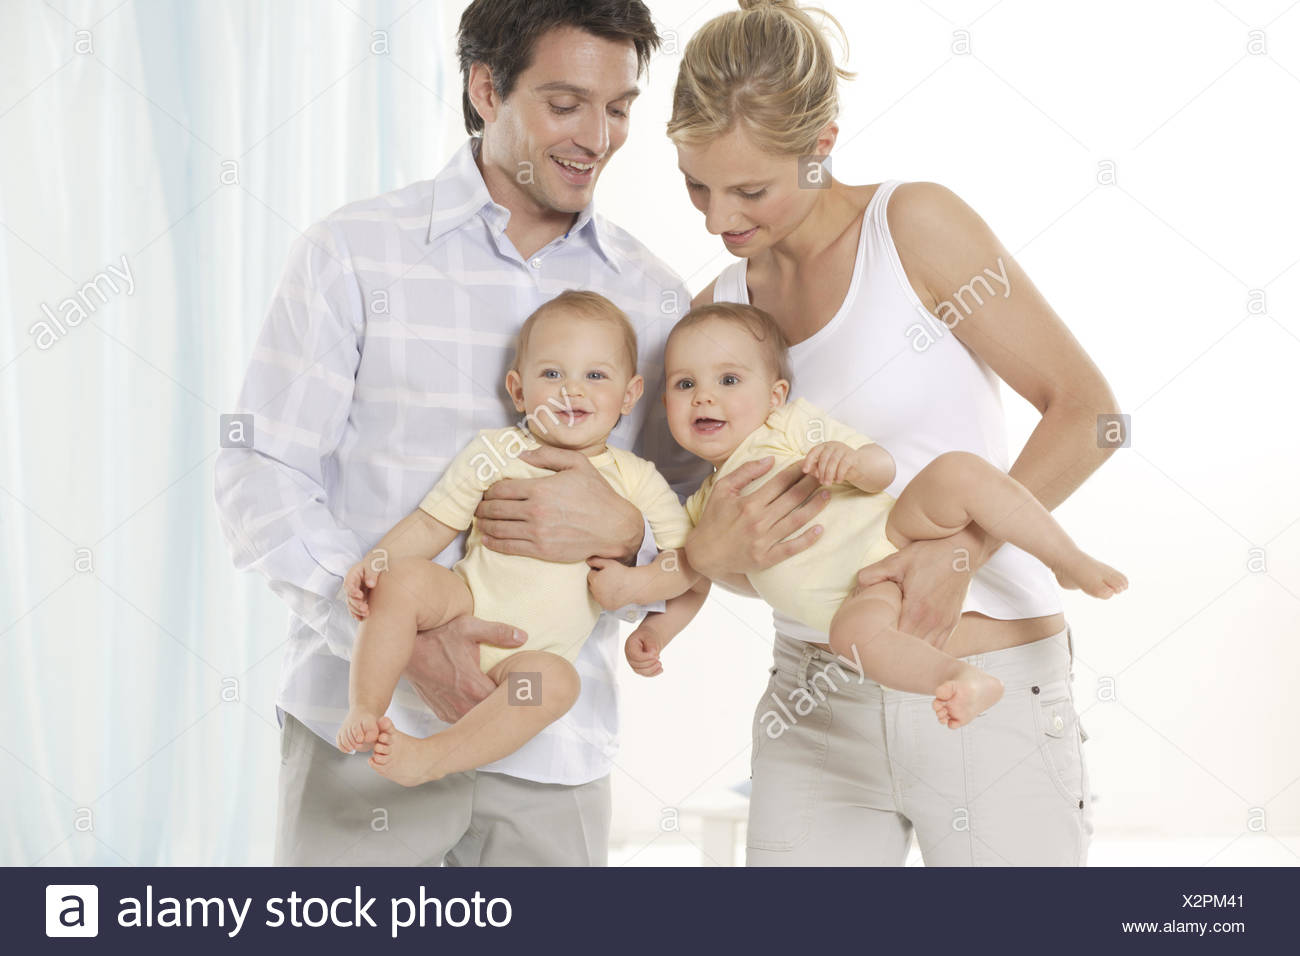 Parents holding twin babies - Stock Image